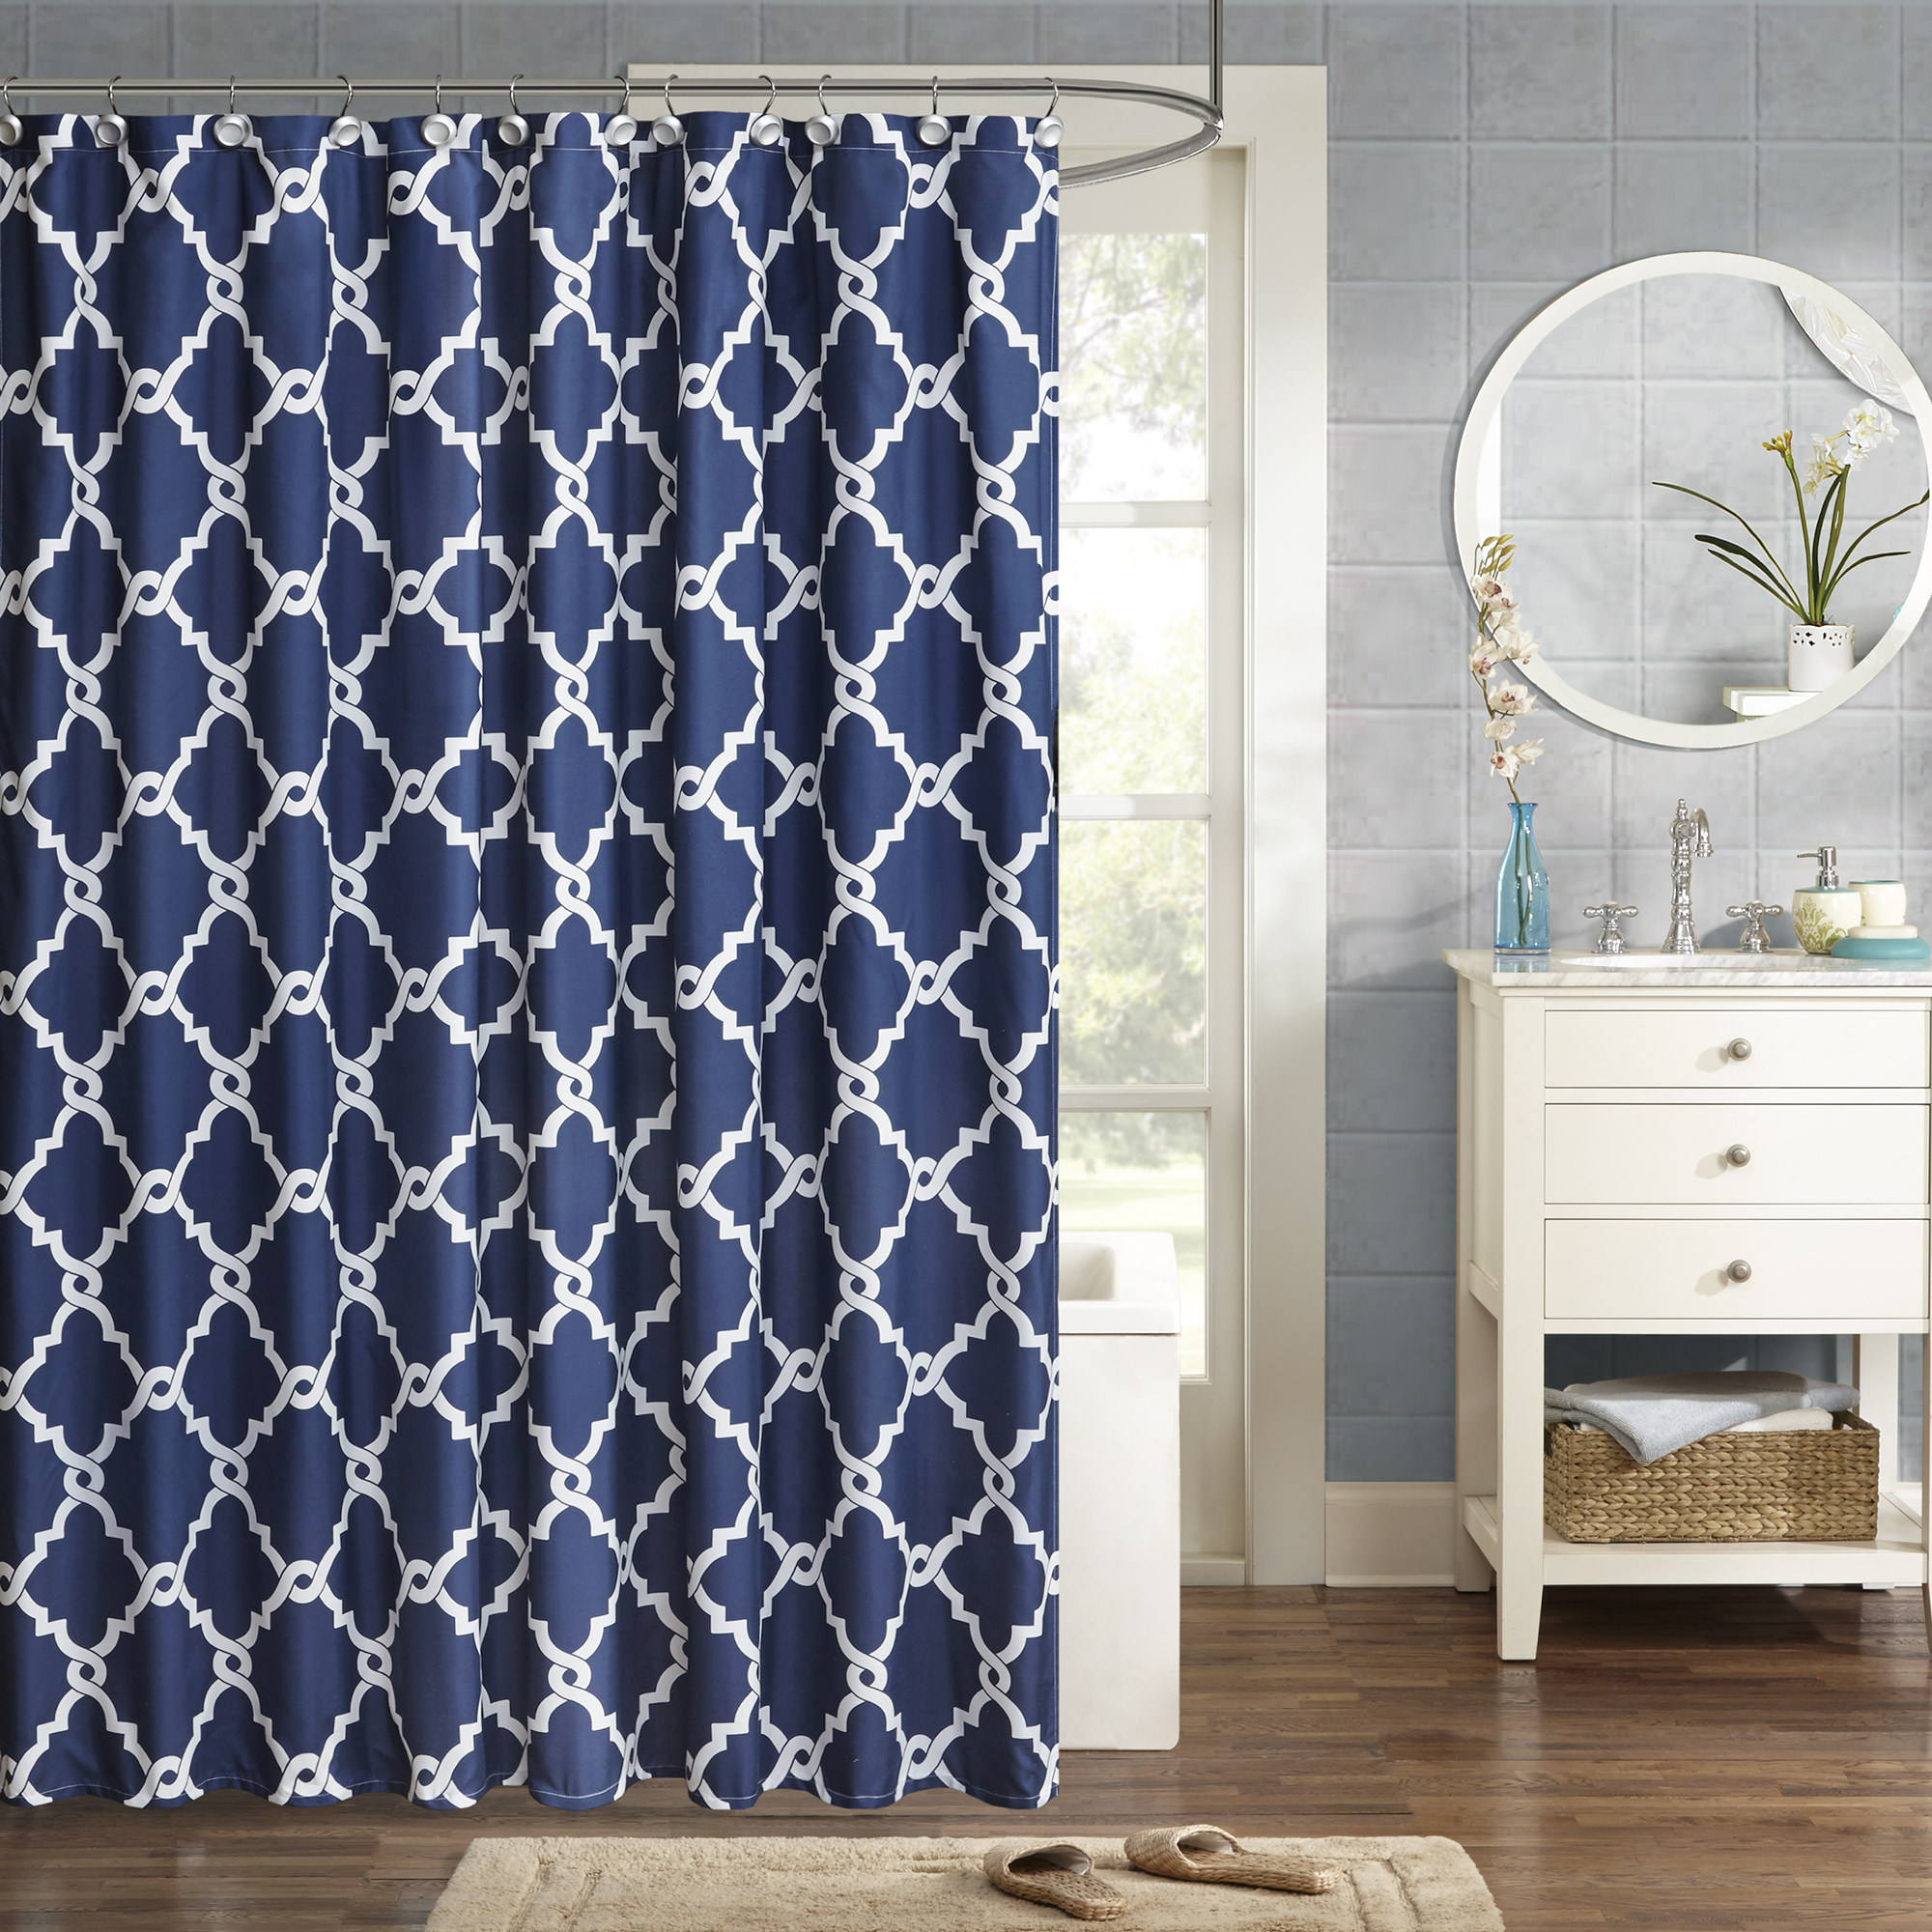 Home Essence Becker Ultra Soft Printed Shower Curtain